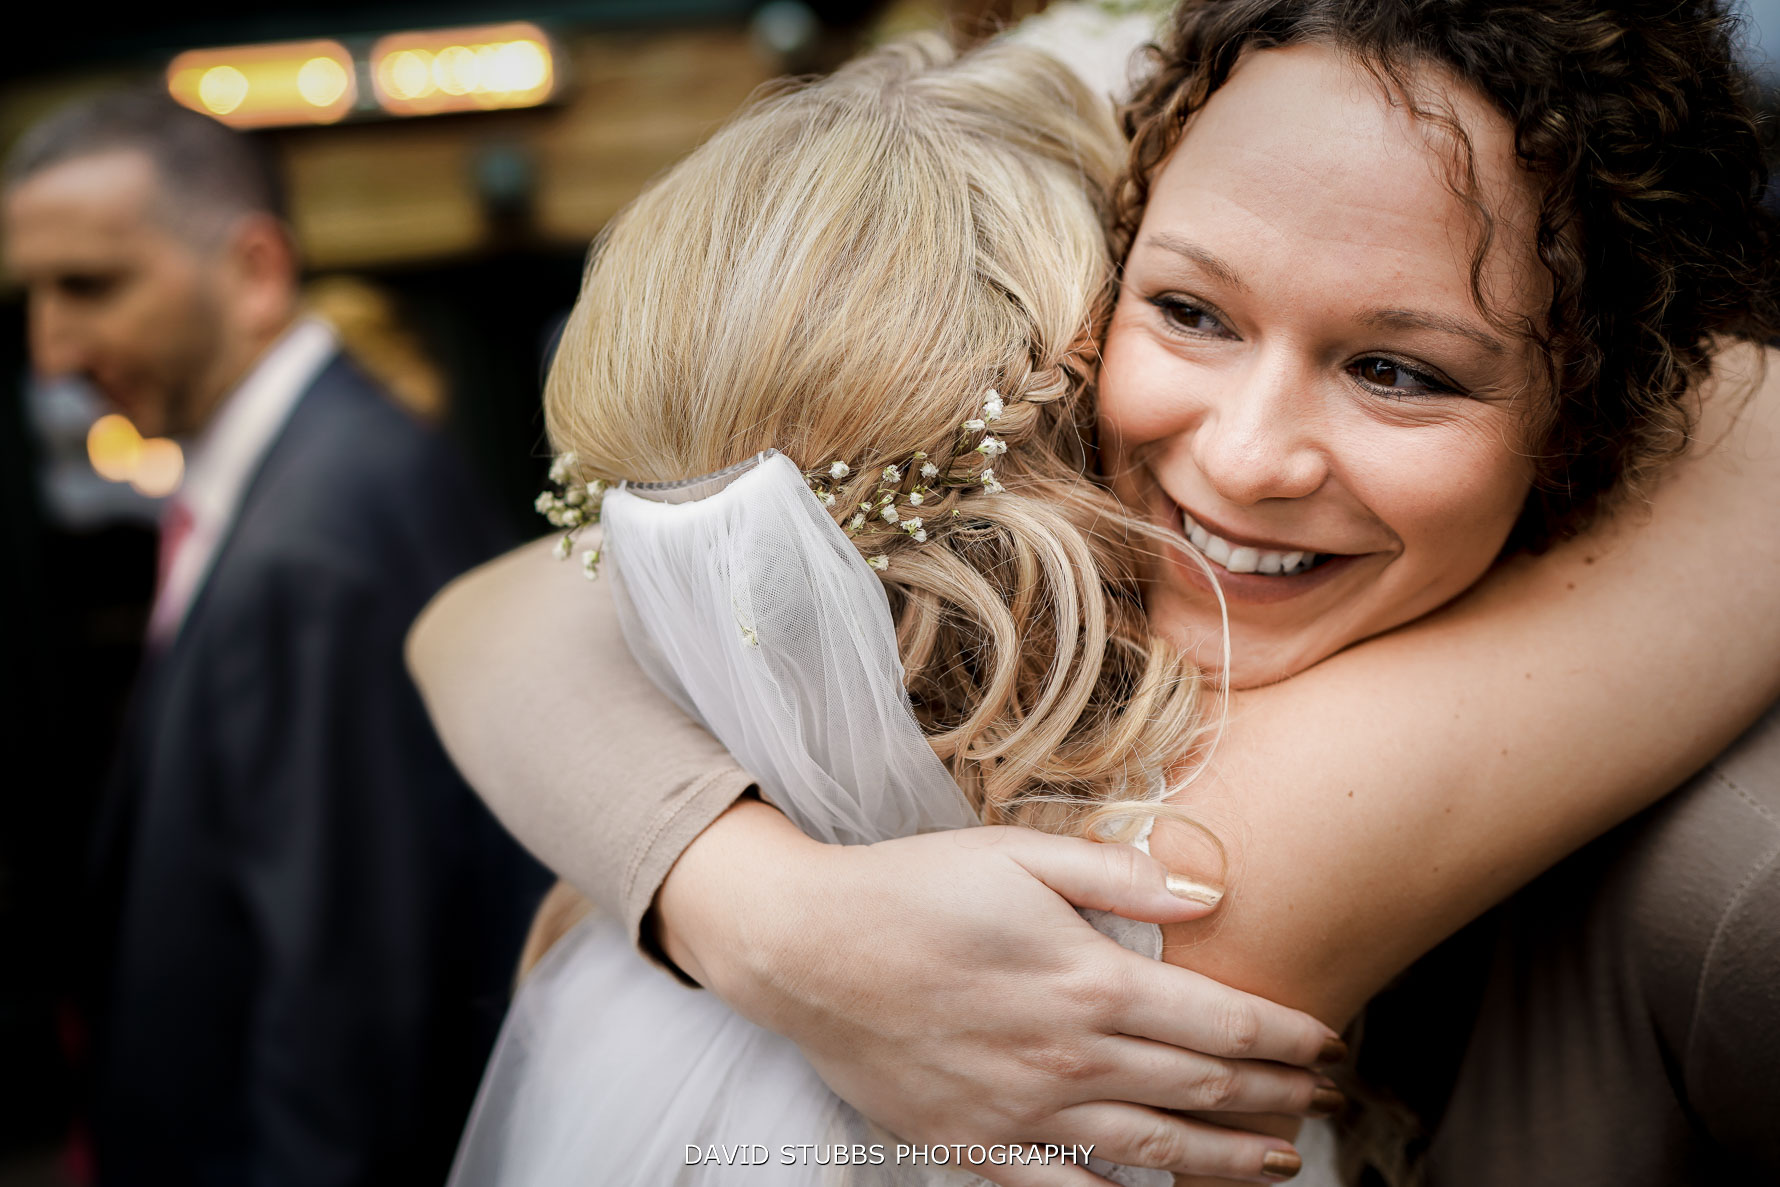 huge hugs after the ceremony at Great John Street Hotel